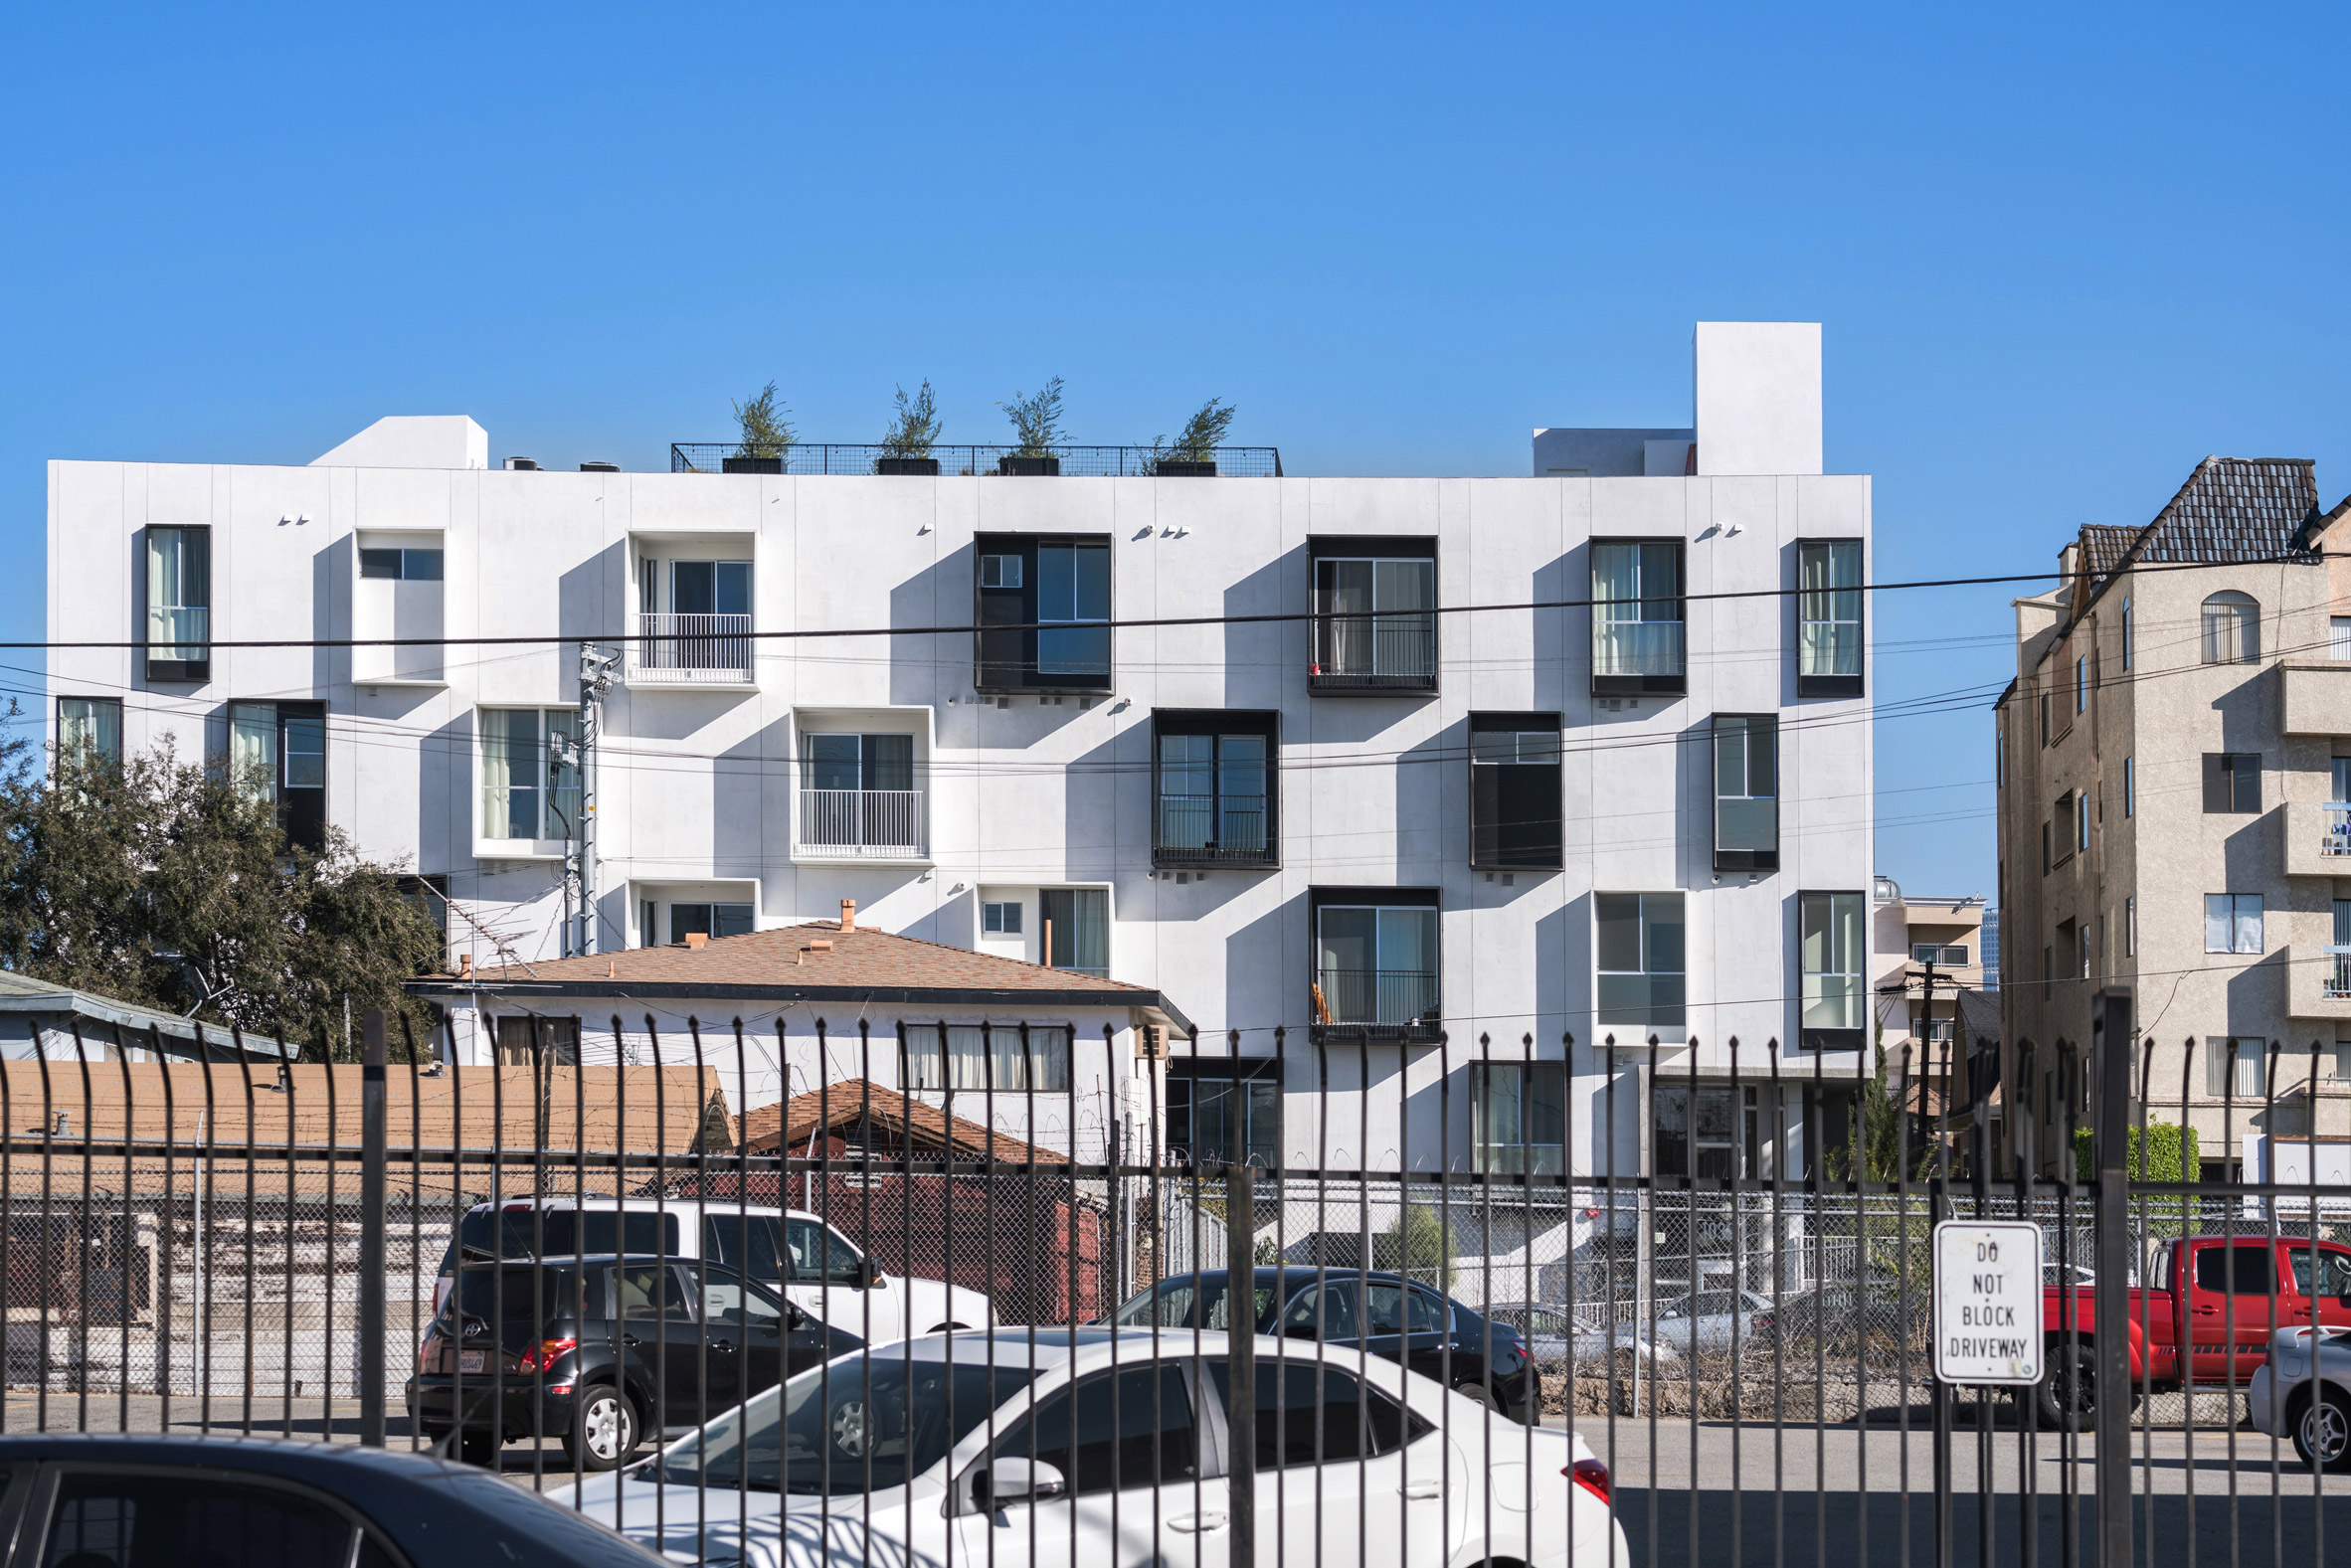 3Novices:LOHA creates housing block with curvilinear courtyard in